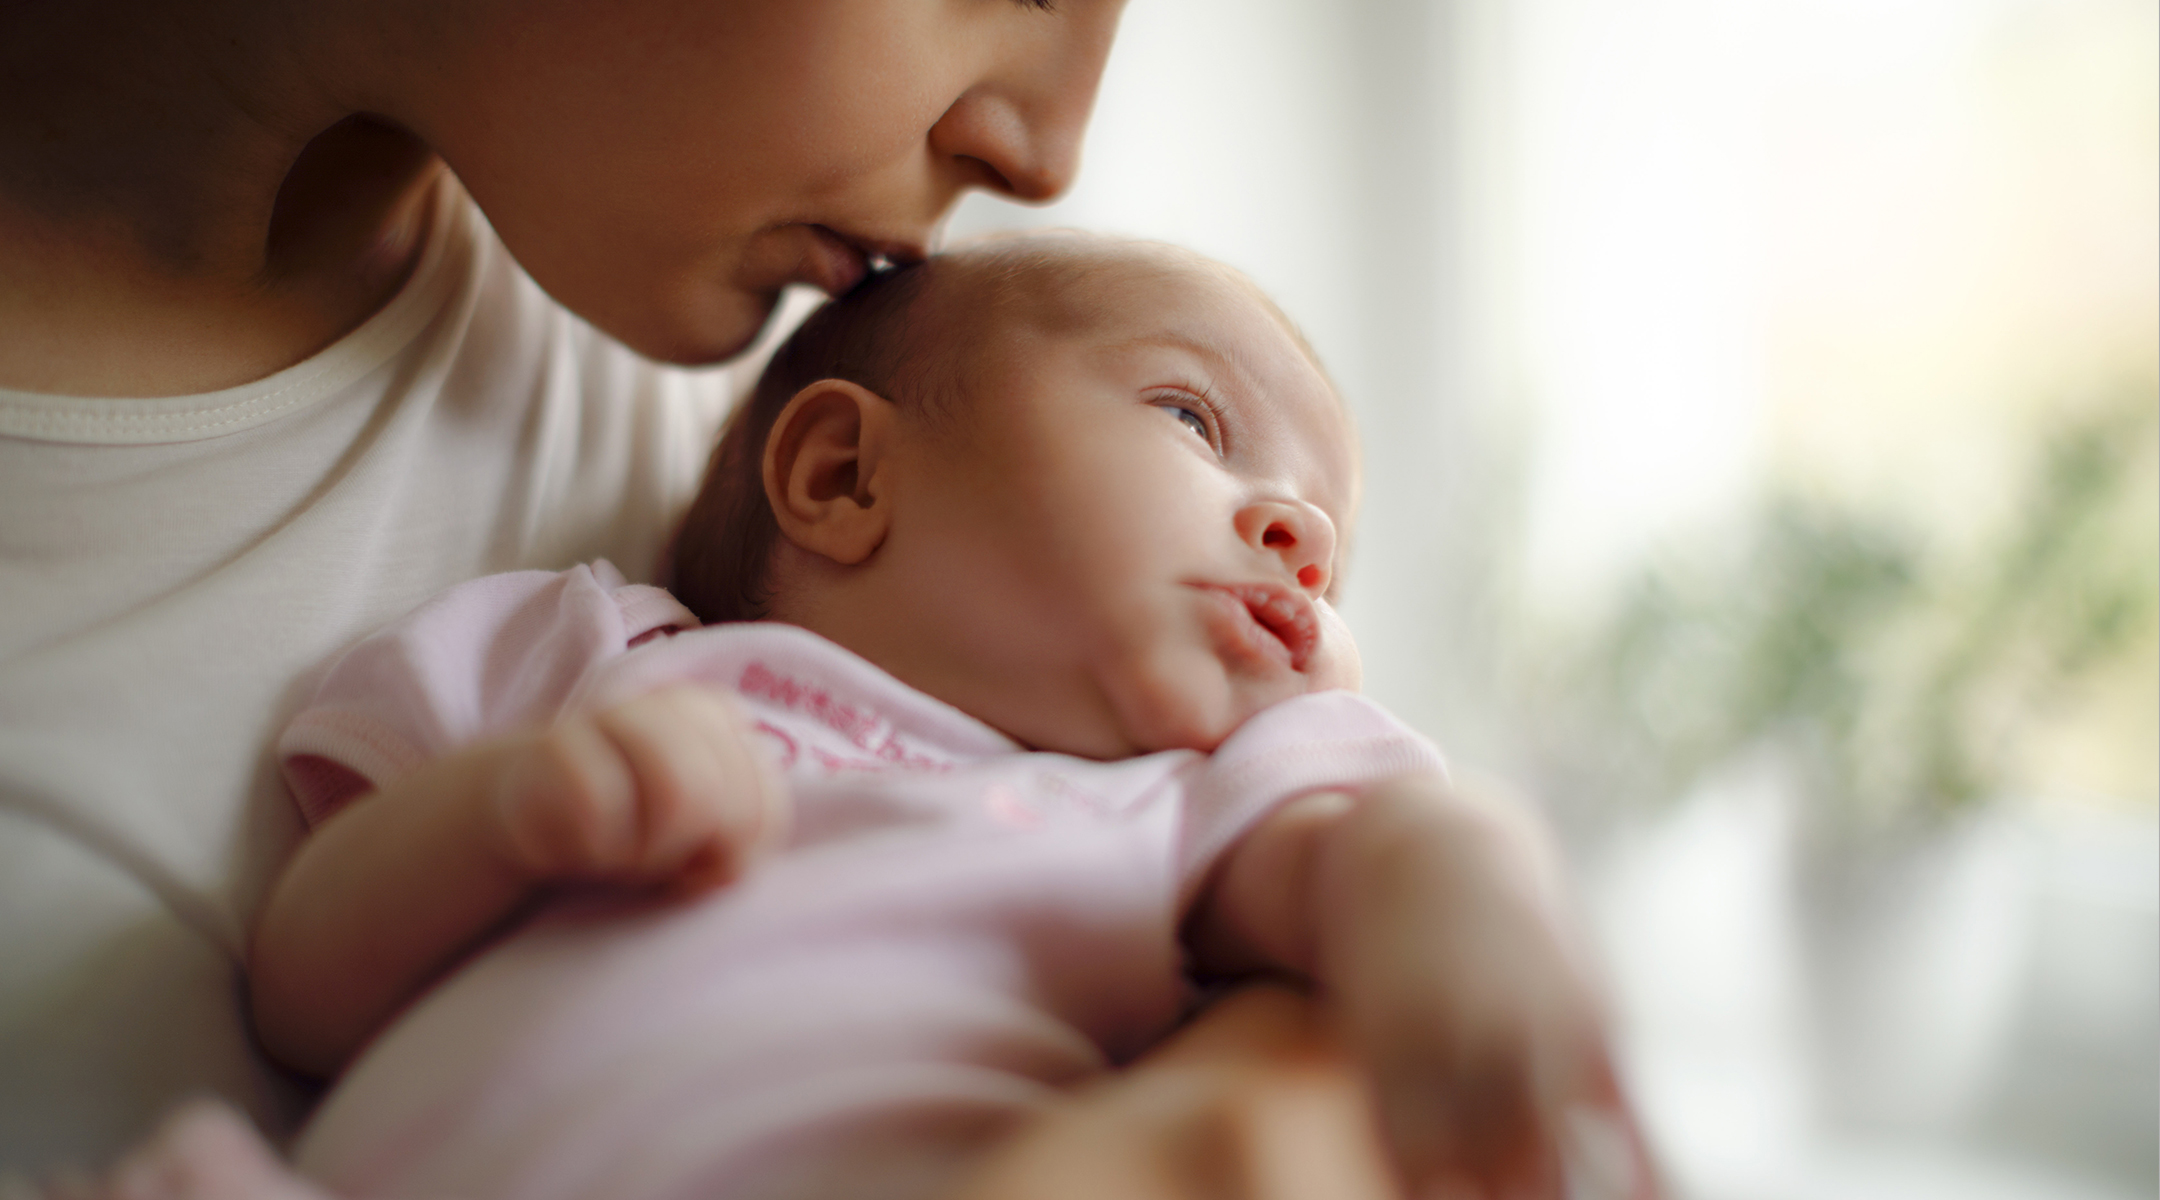 Flu in Babies: Symptoms, Treatment and Prevention